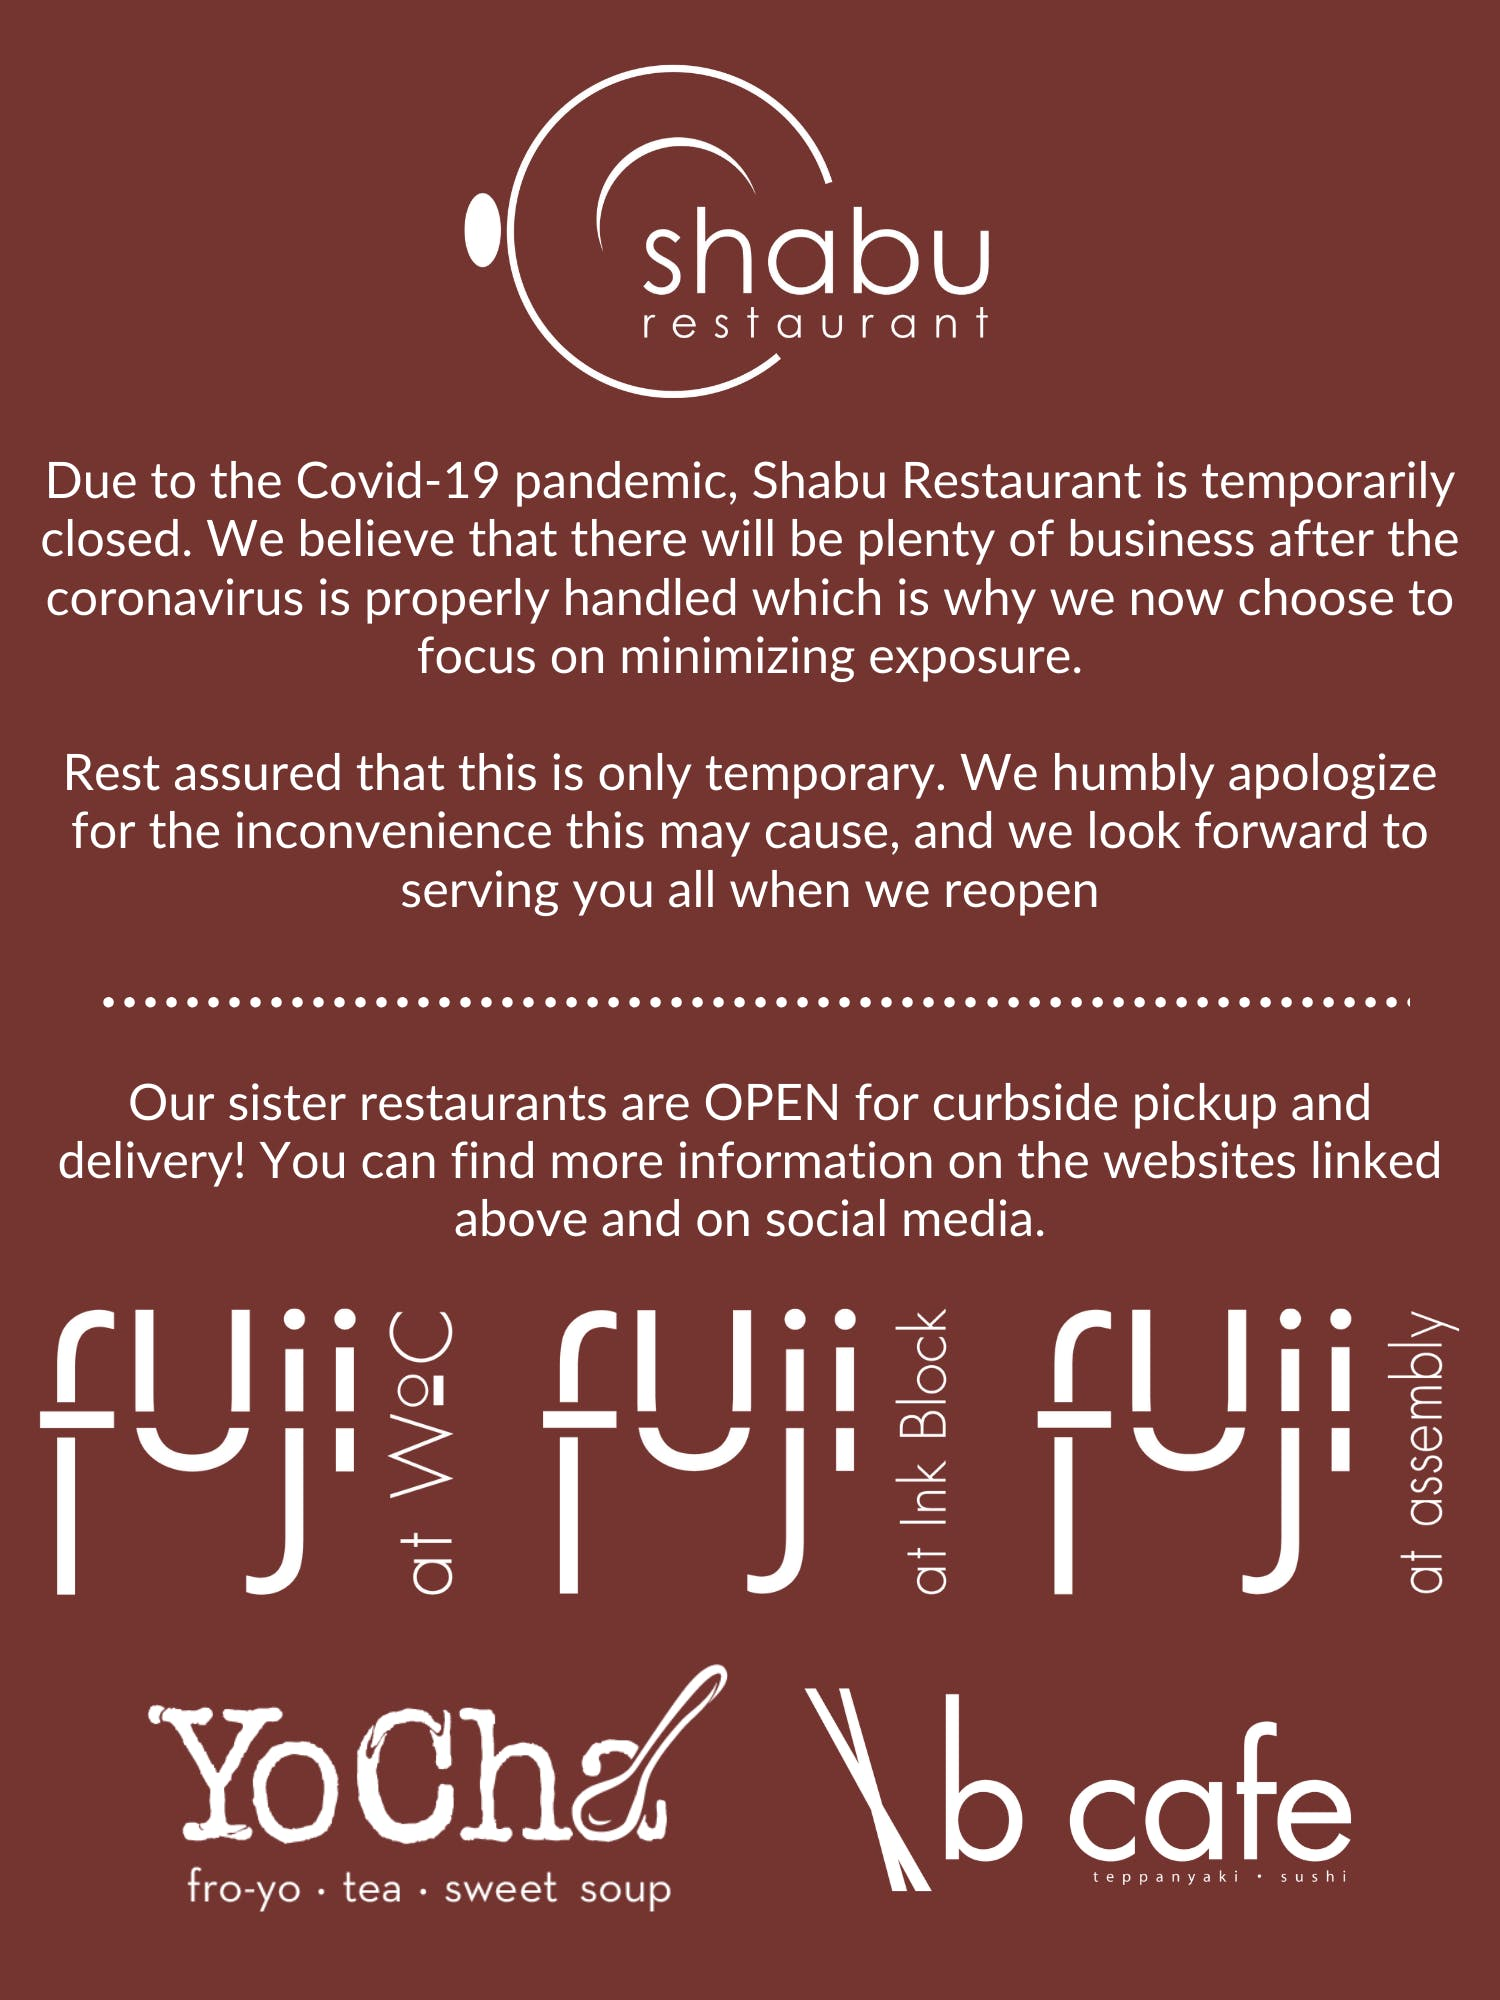 Shabu Restaurant is currently closed due to the Covid-19 pandemic. Please check out our sister restaurants that are open! Fuji at WoC / Fuji at Ink Block / Fuji at Assembly / B Cafe / YoCha